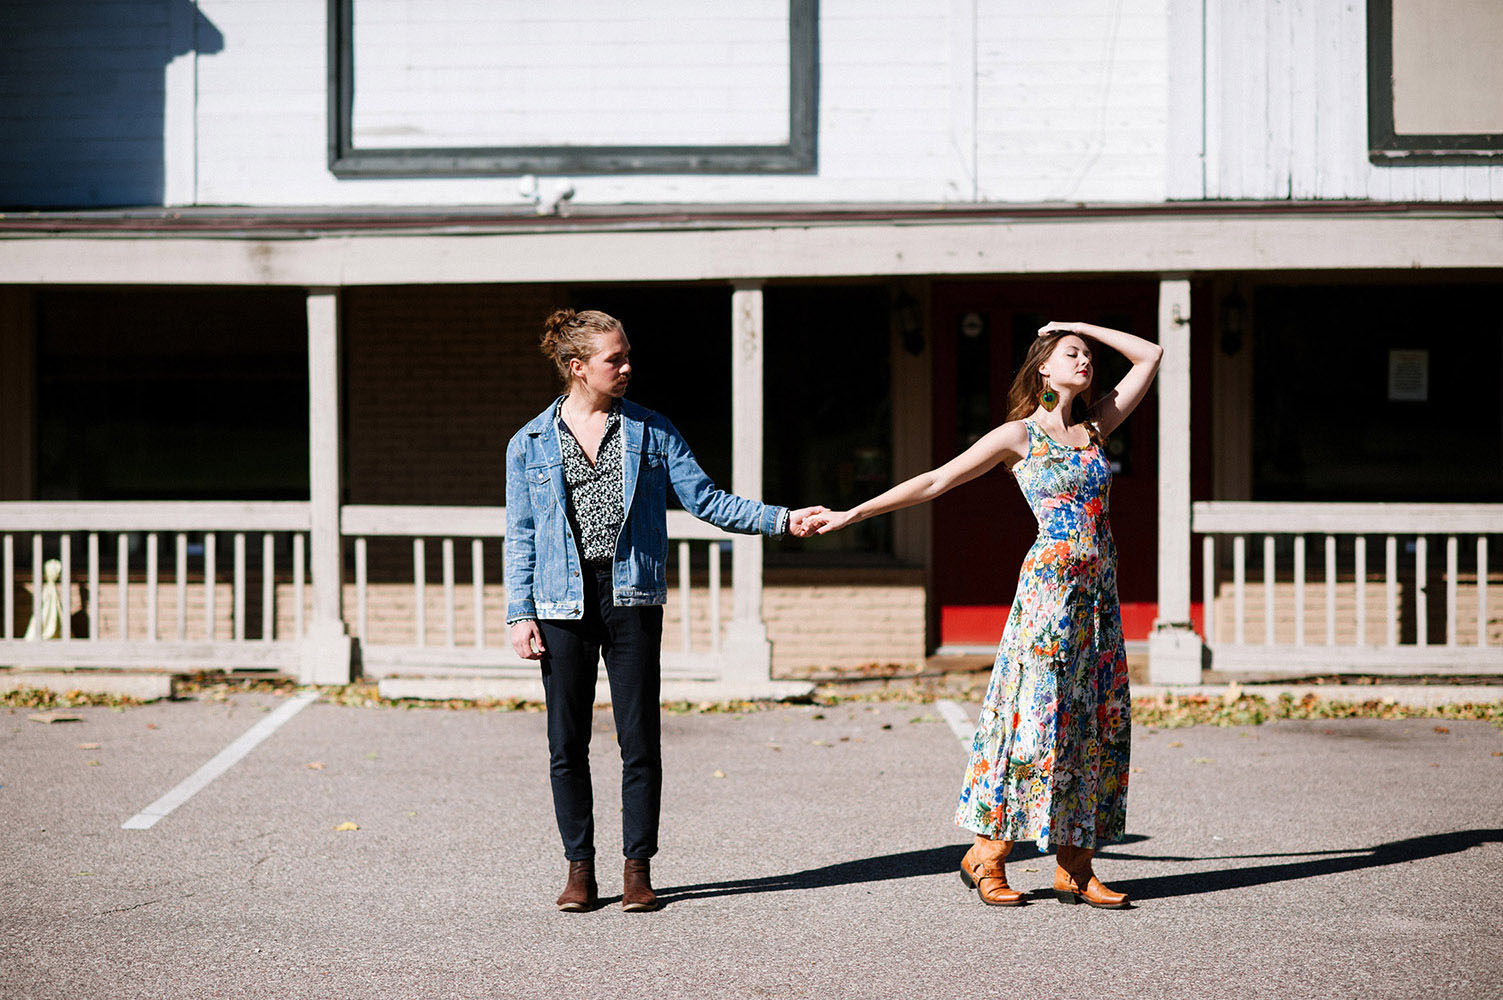 male with man bun and jean jacket and woman in long floral print dress, cowboy boots and peacock feather earrings in front of old Western building